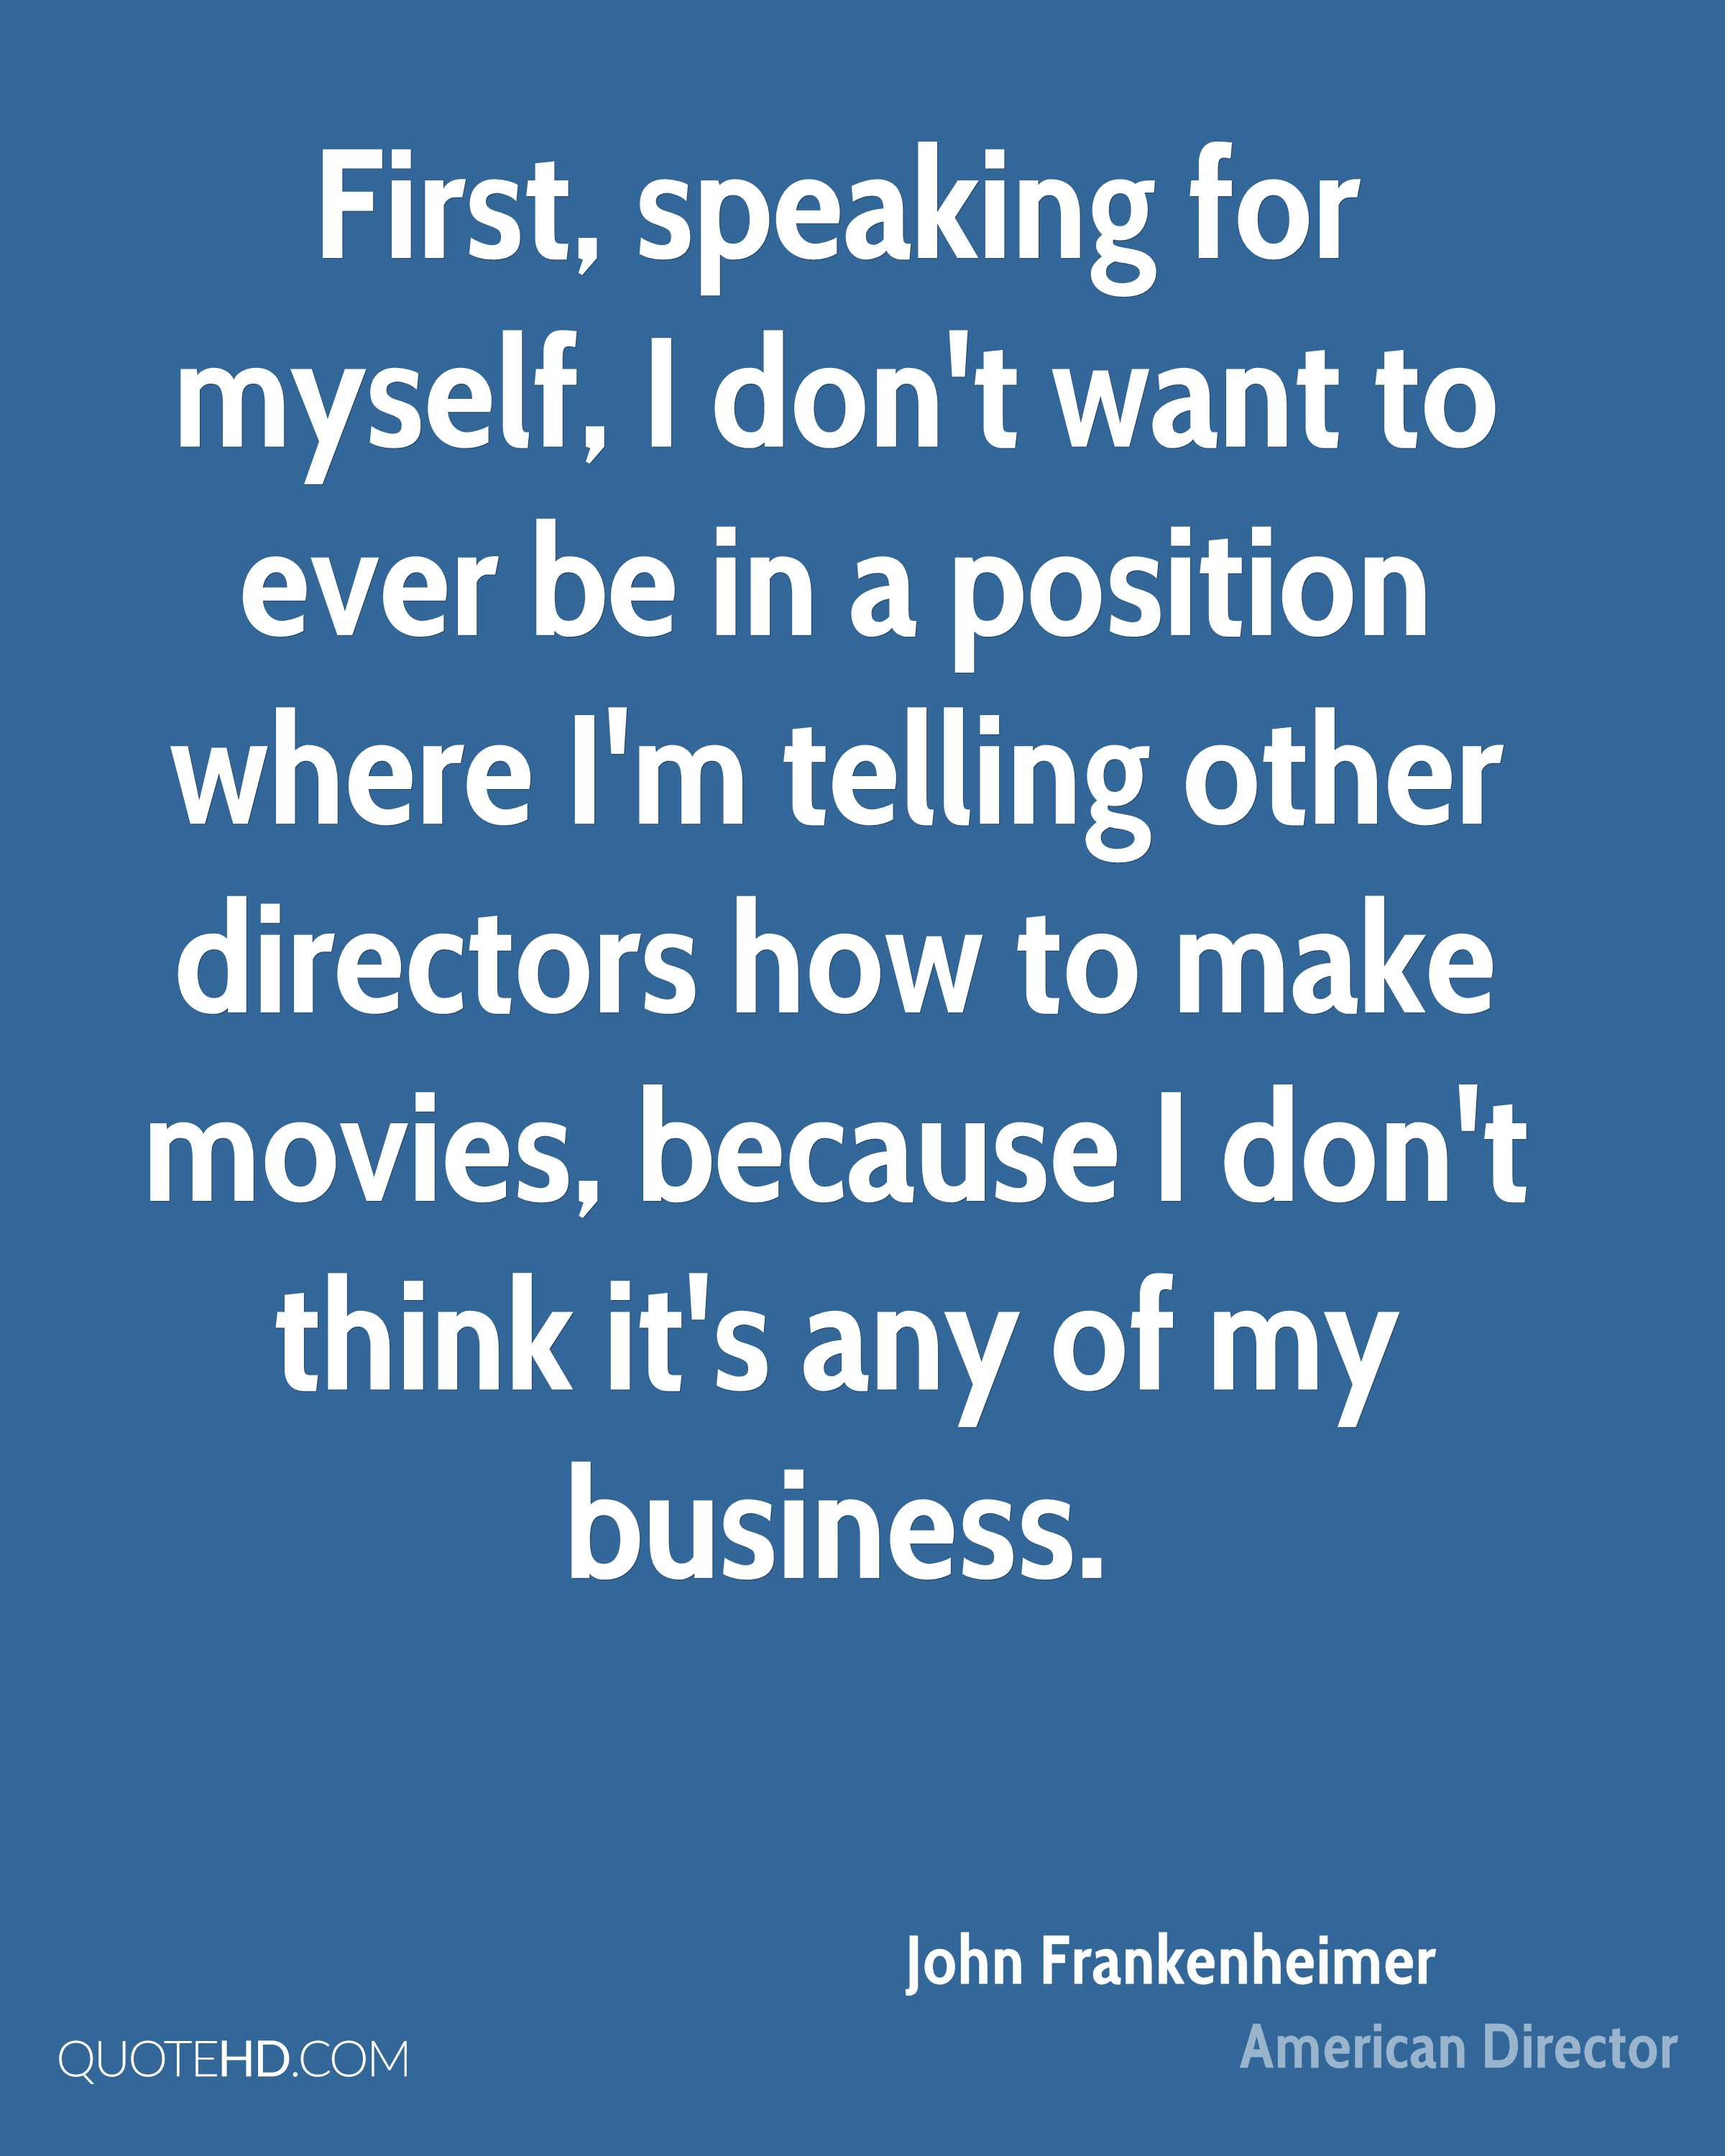 First, speaking for myself, I don't want to ever be in a position where I'm telling other directors how to make movies, because I don't think it's any of my business.